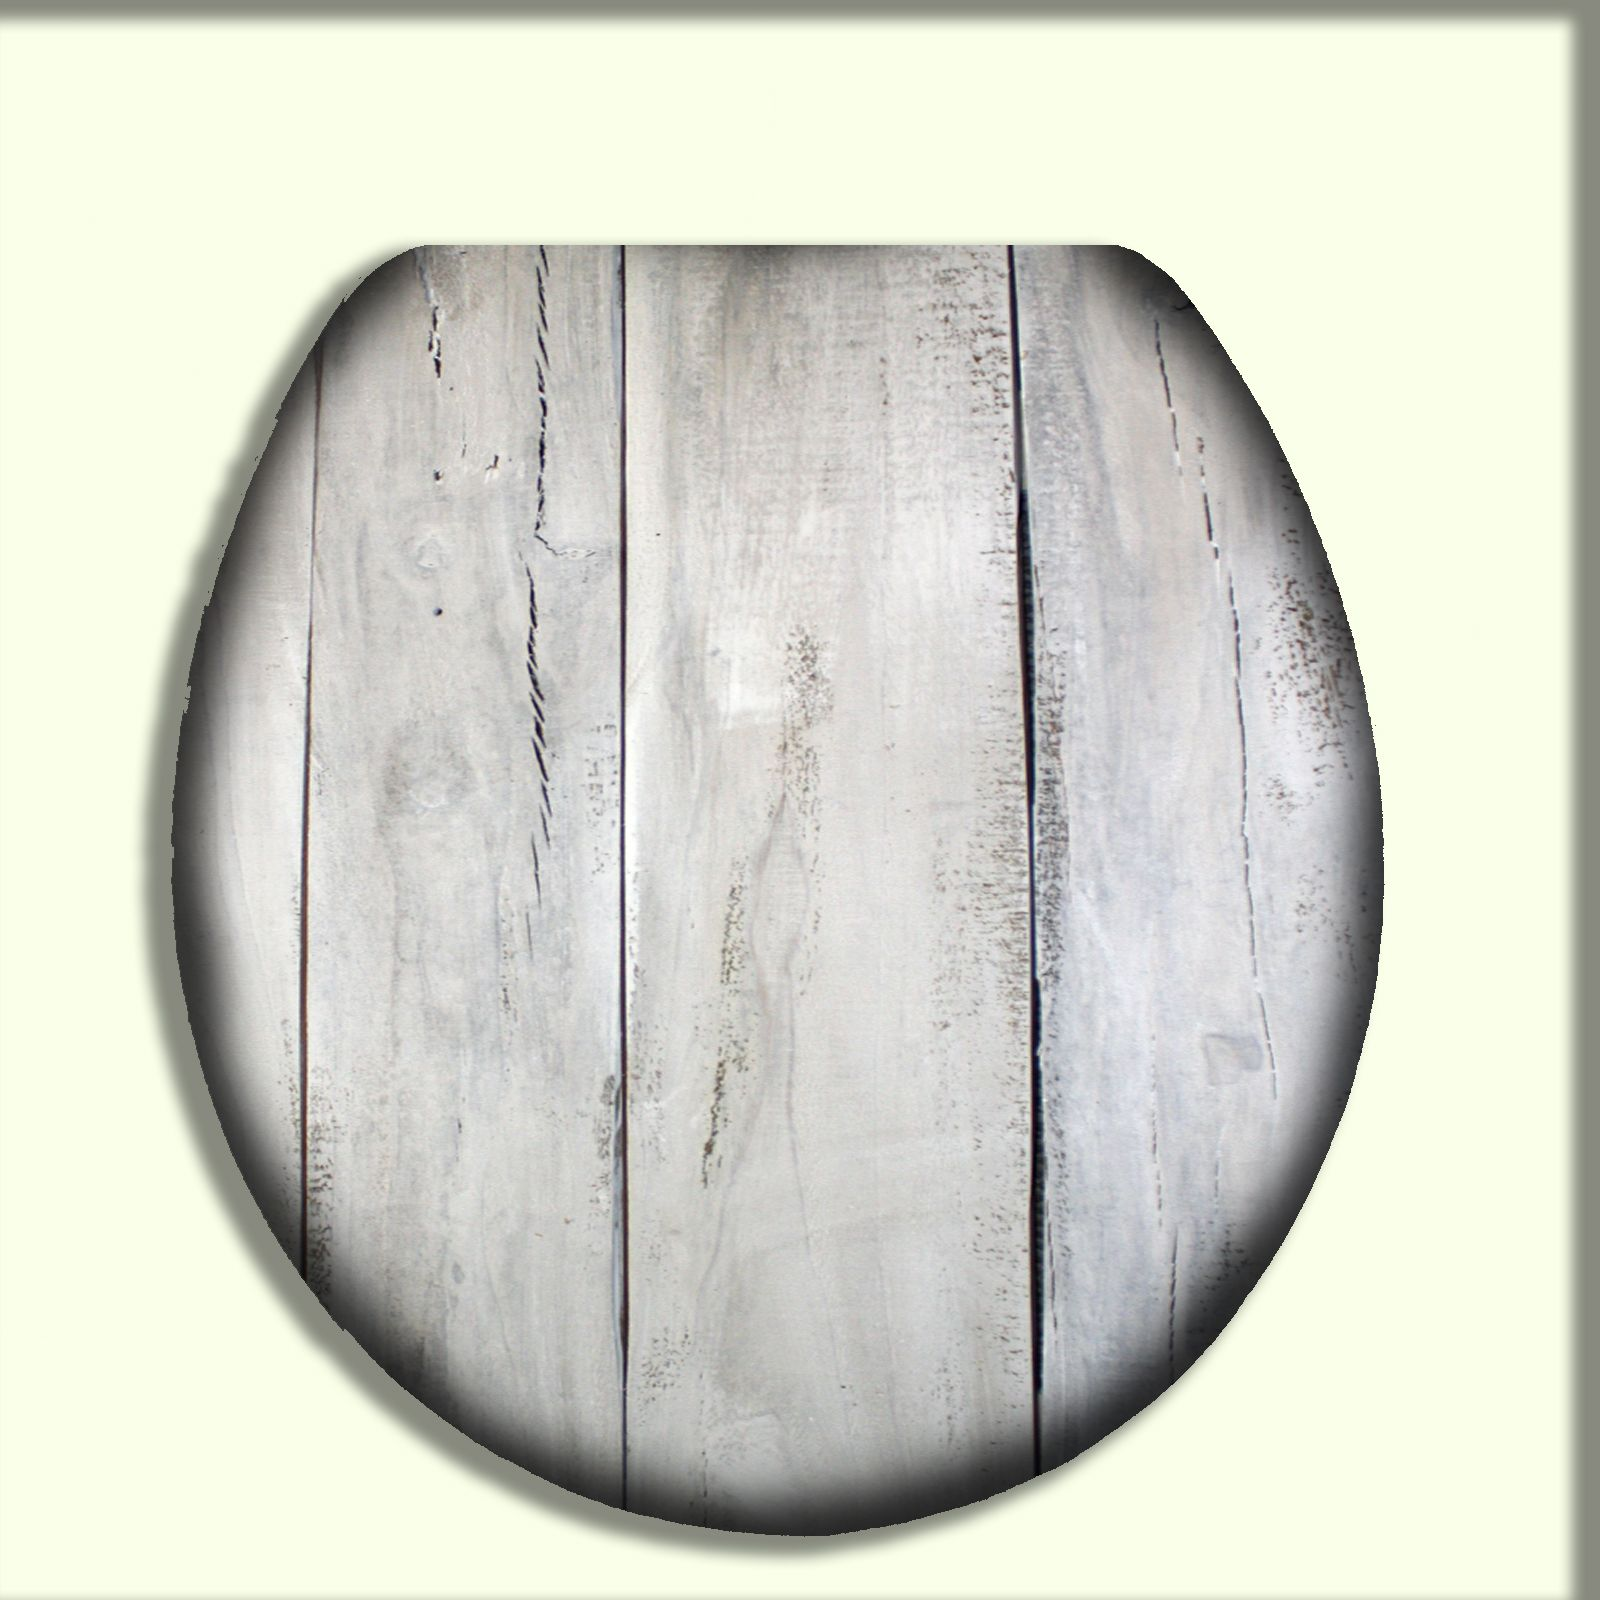 Heavy duty Metal Hinges Round Wooden Toilet seats with Stone Design White